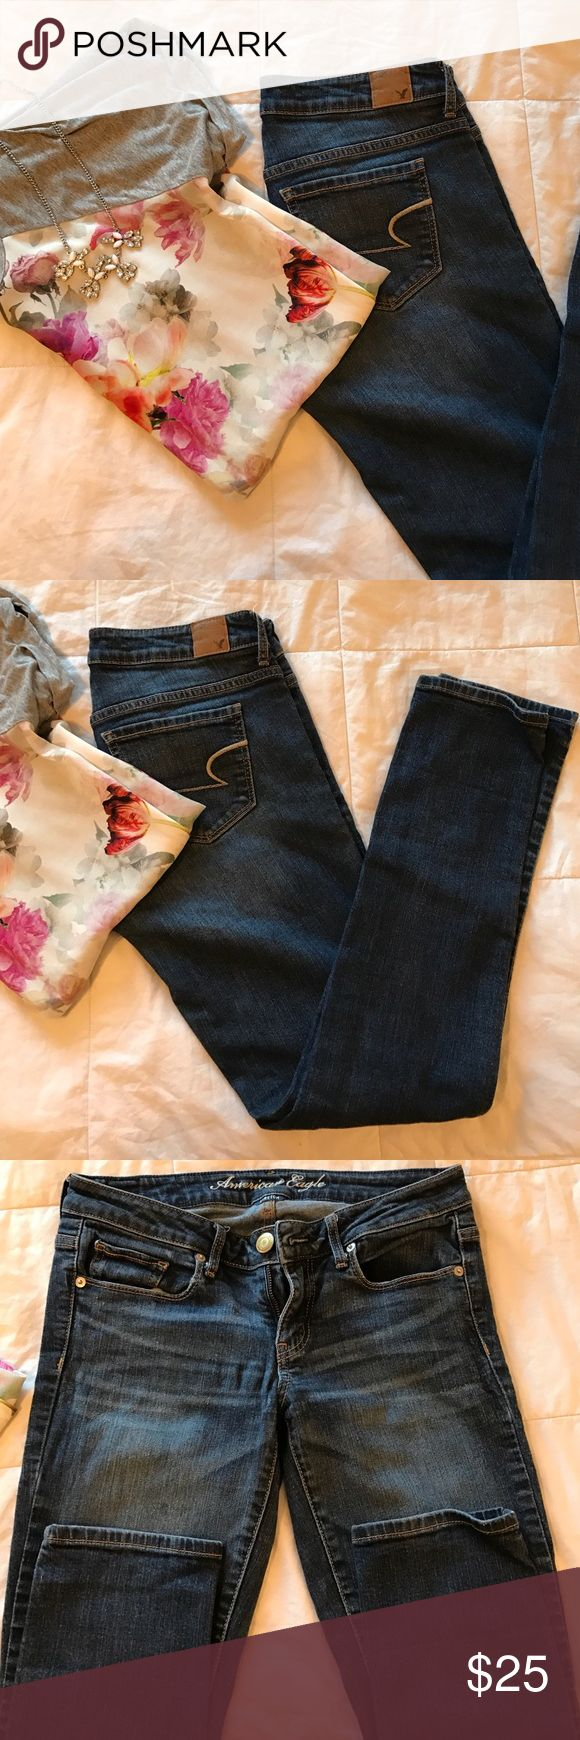 American eagle skinny jeans Darker wash,whispering below pockets. 6 short, stretch. Price is negotiable, please use offer button discounts on bundles. American Eagle Outfitters Jeans Skinny